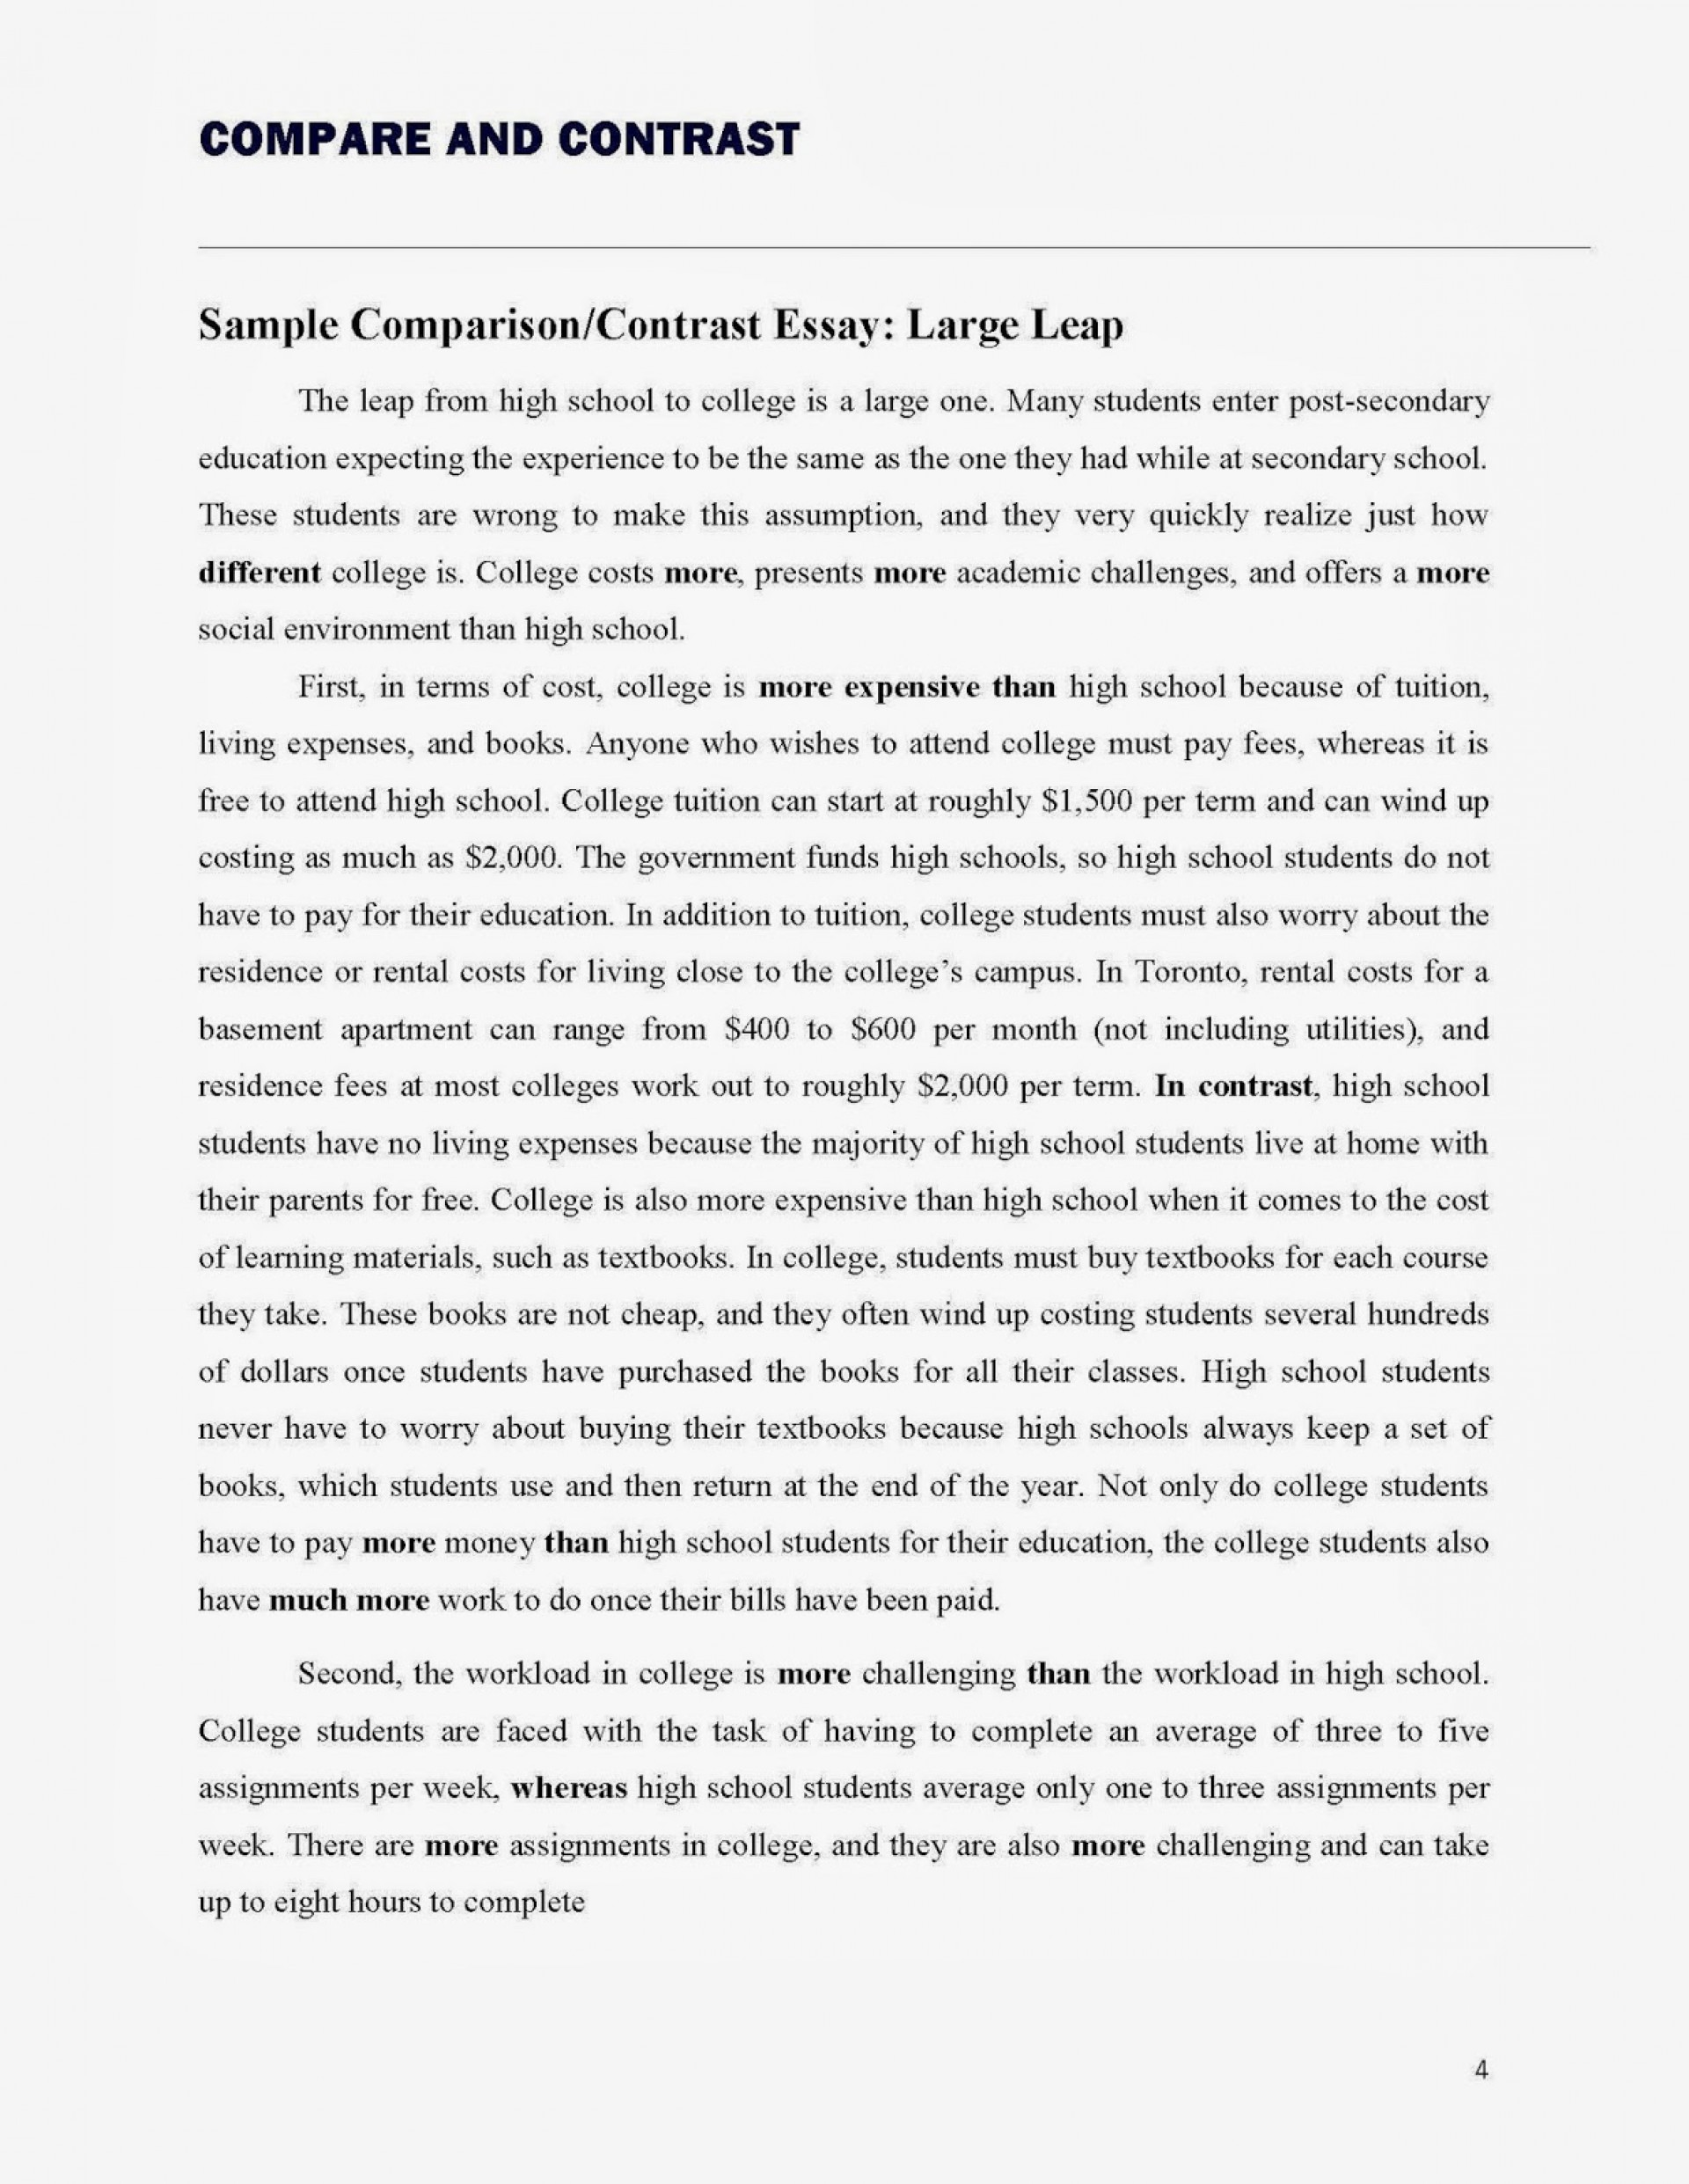 004 Essay Example Compare2band2bcontrast2bessay Page 4 Compare And Contrast Top Intro Introduction Paragraph Sample 1920